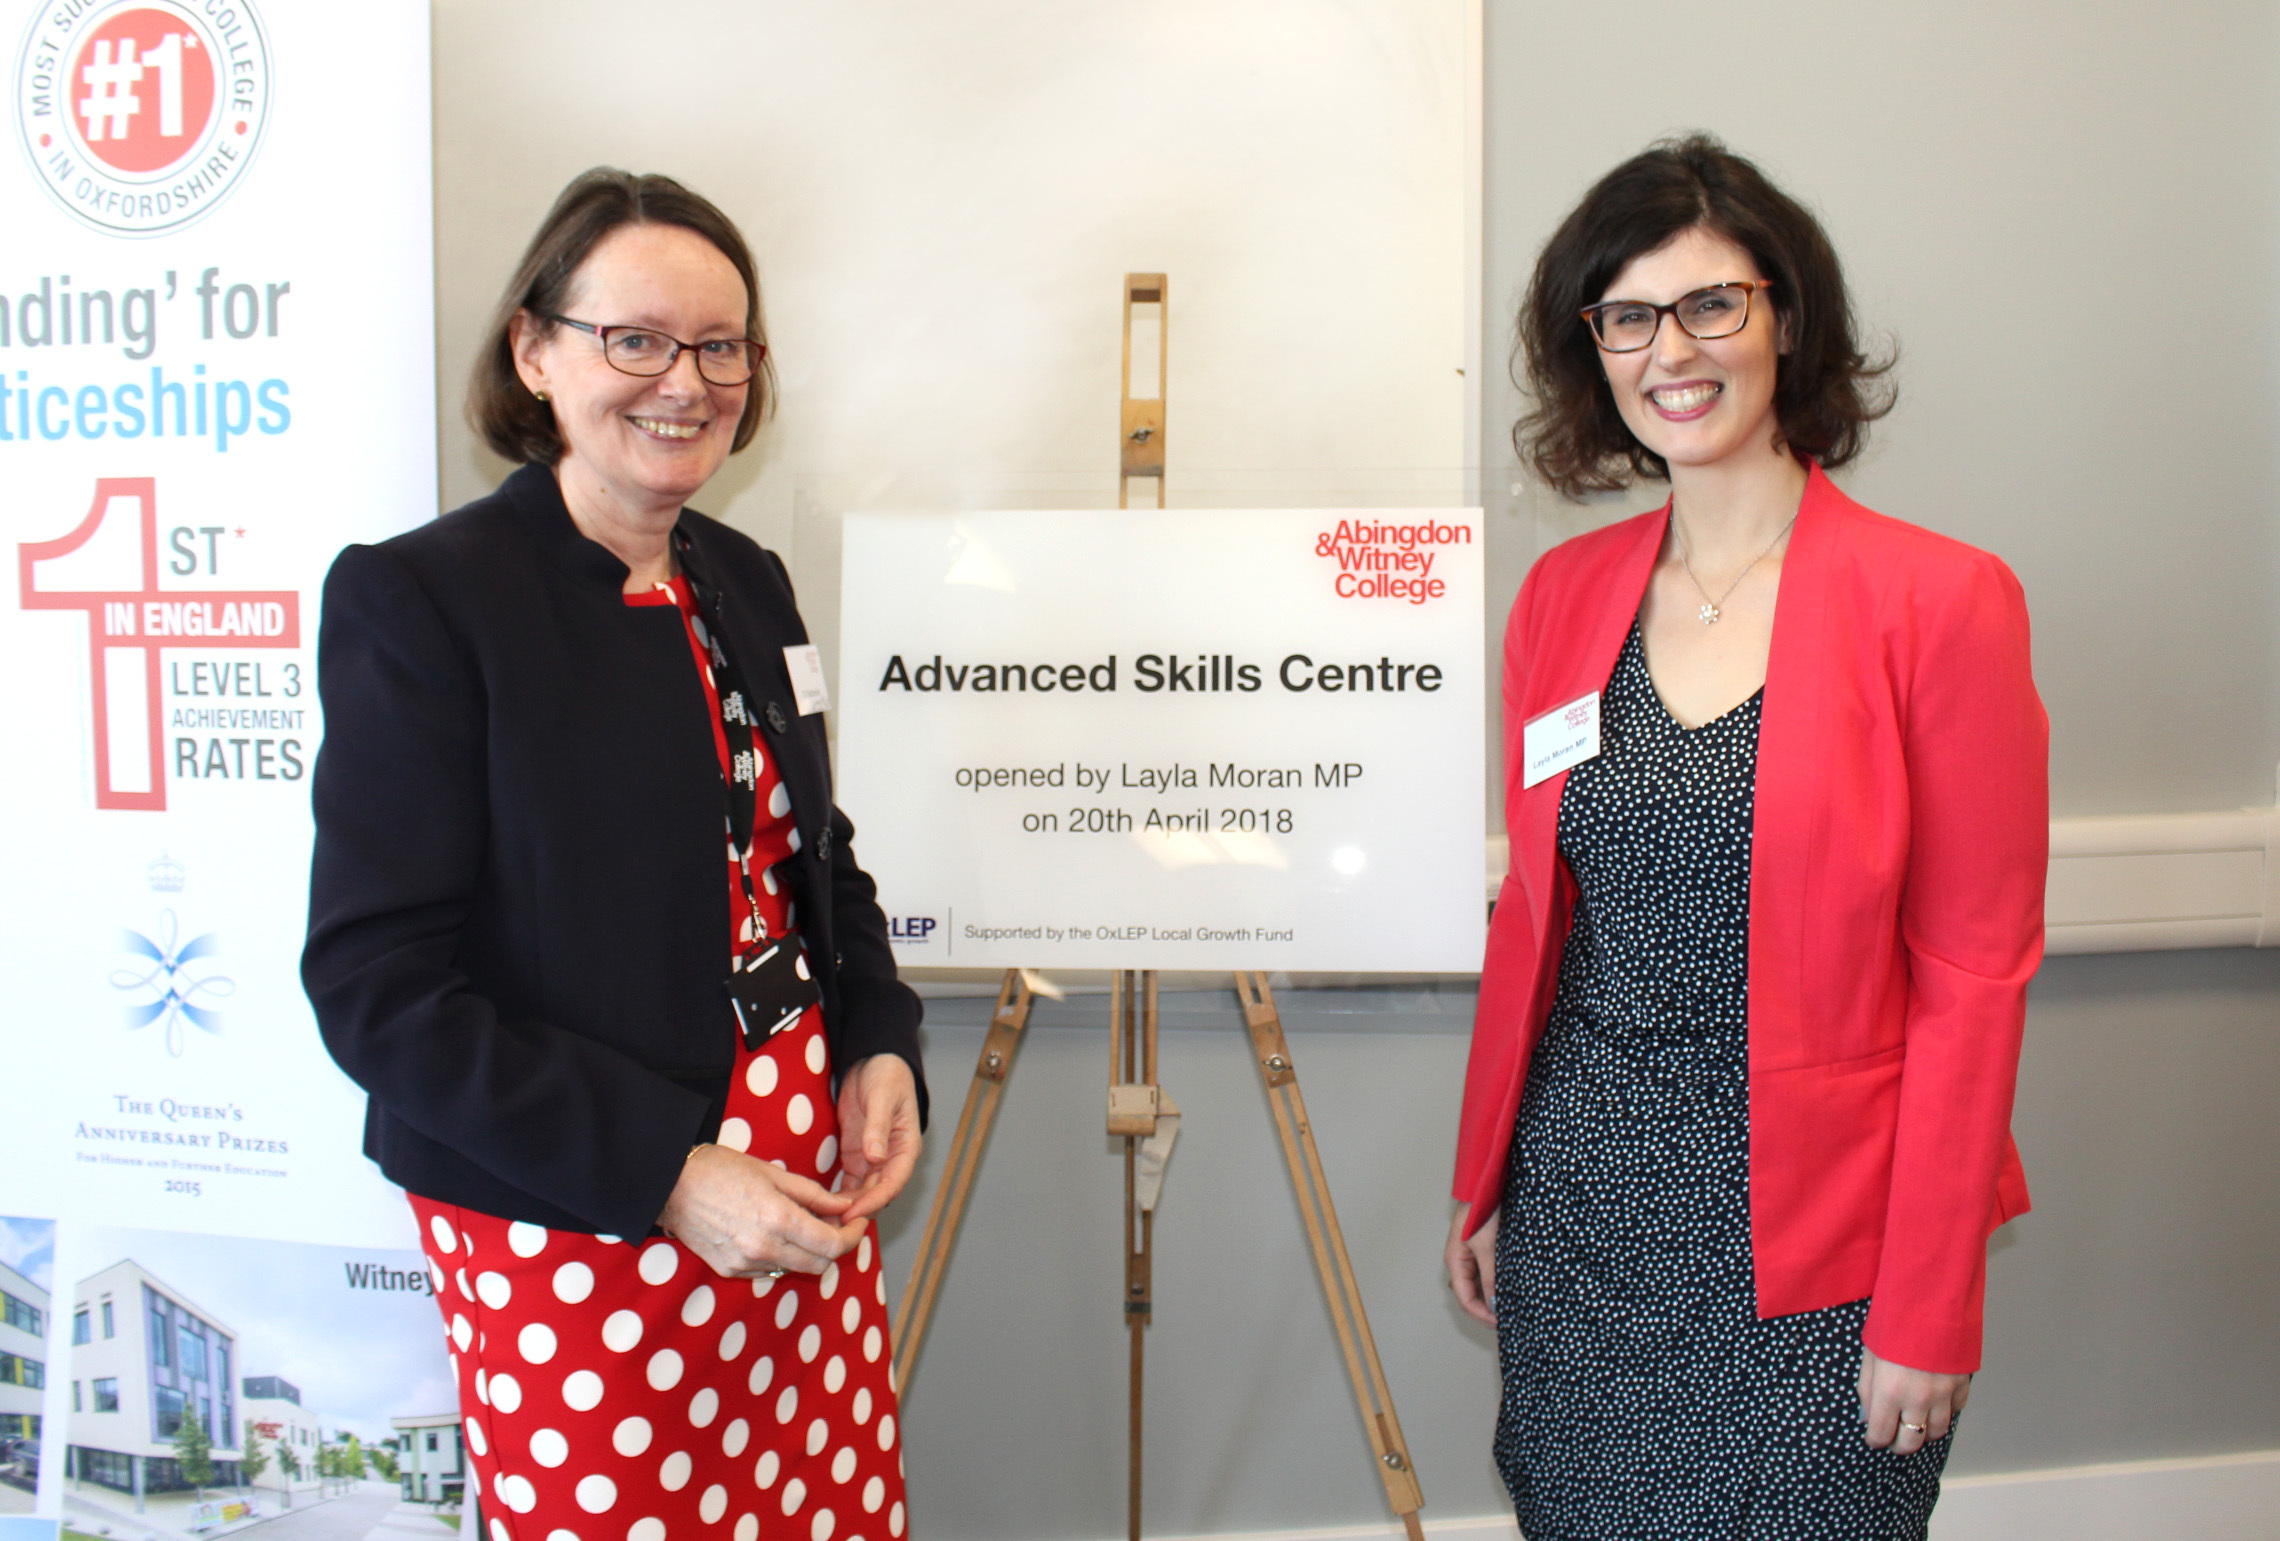 PERFORMING: Principal Di Batchelor and Layla Moran MP opening the college's new Higher Education Advanced Skills Centre in April 2018. Picture: Abingdon and Witney College